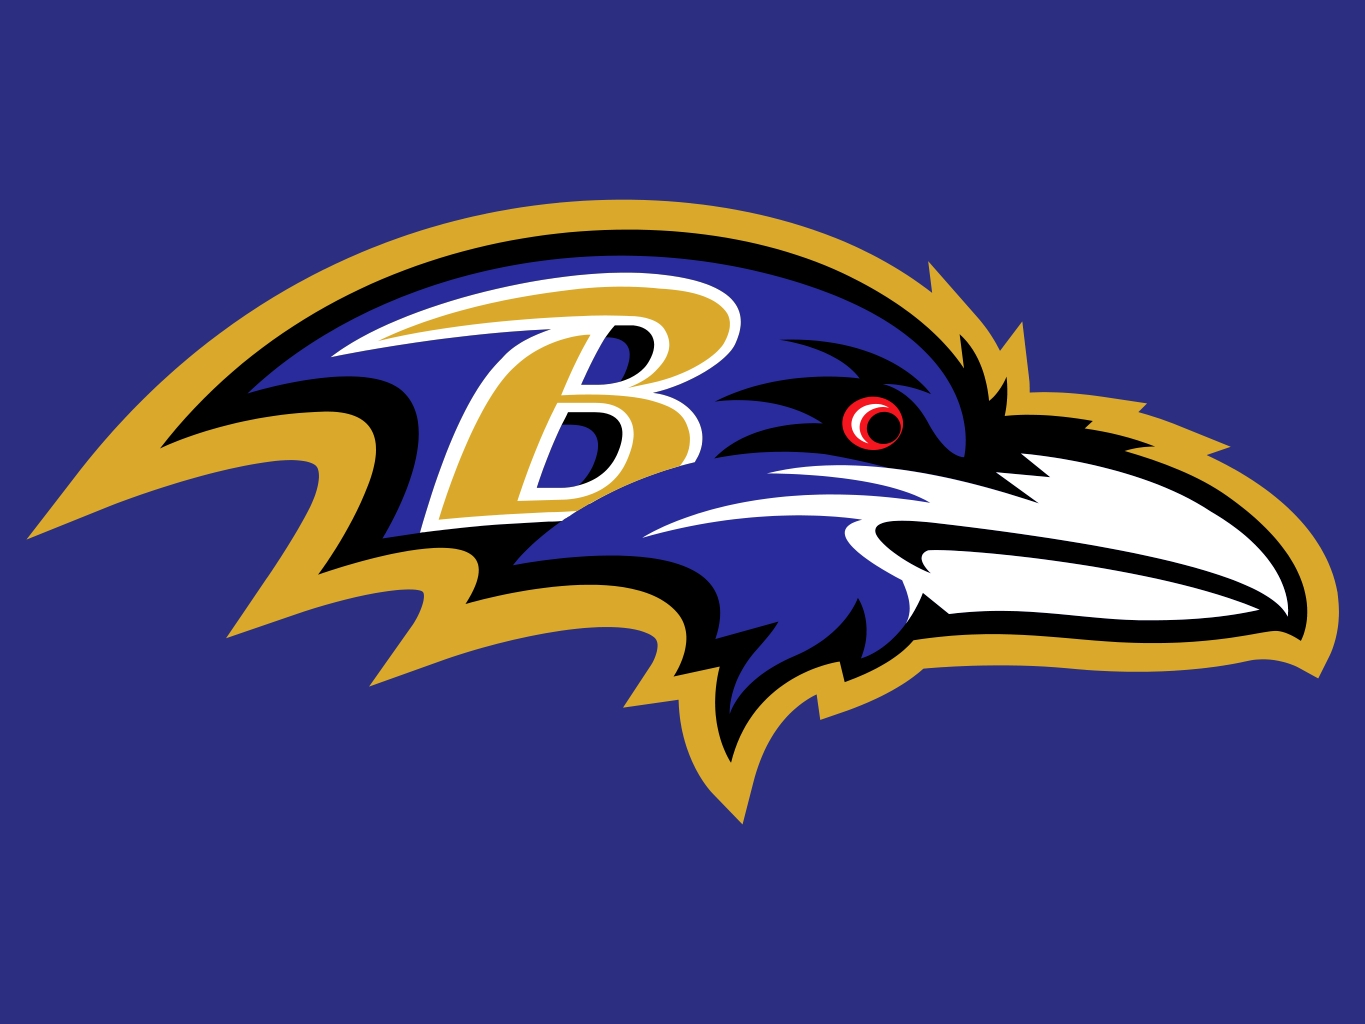 Baltimore Ravens. Click each preview to download the full-size image